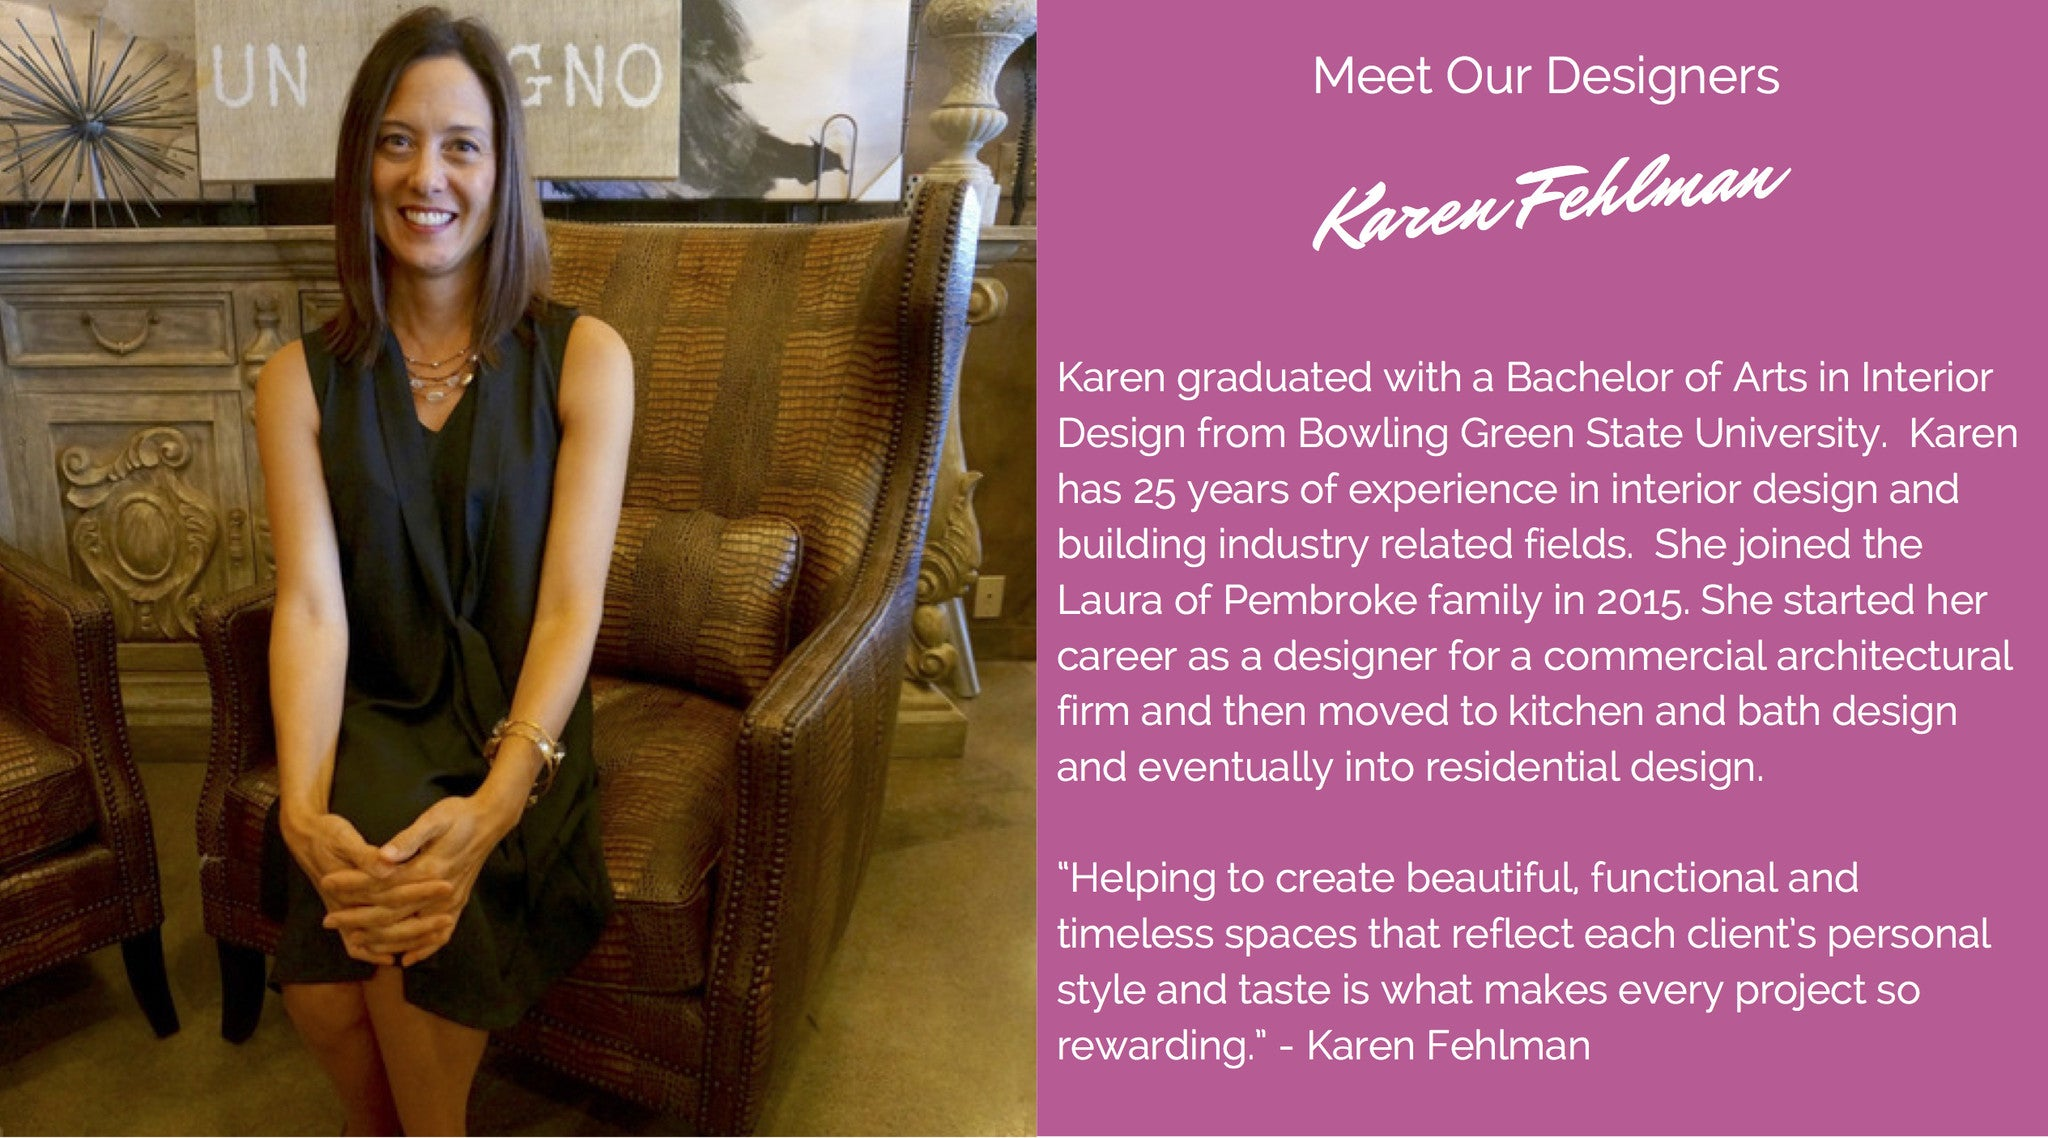 Meet the Designers: Karen